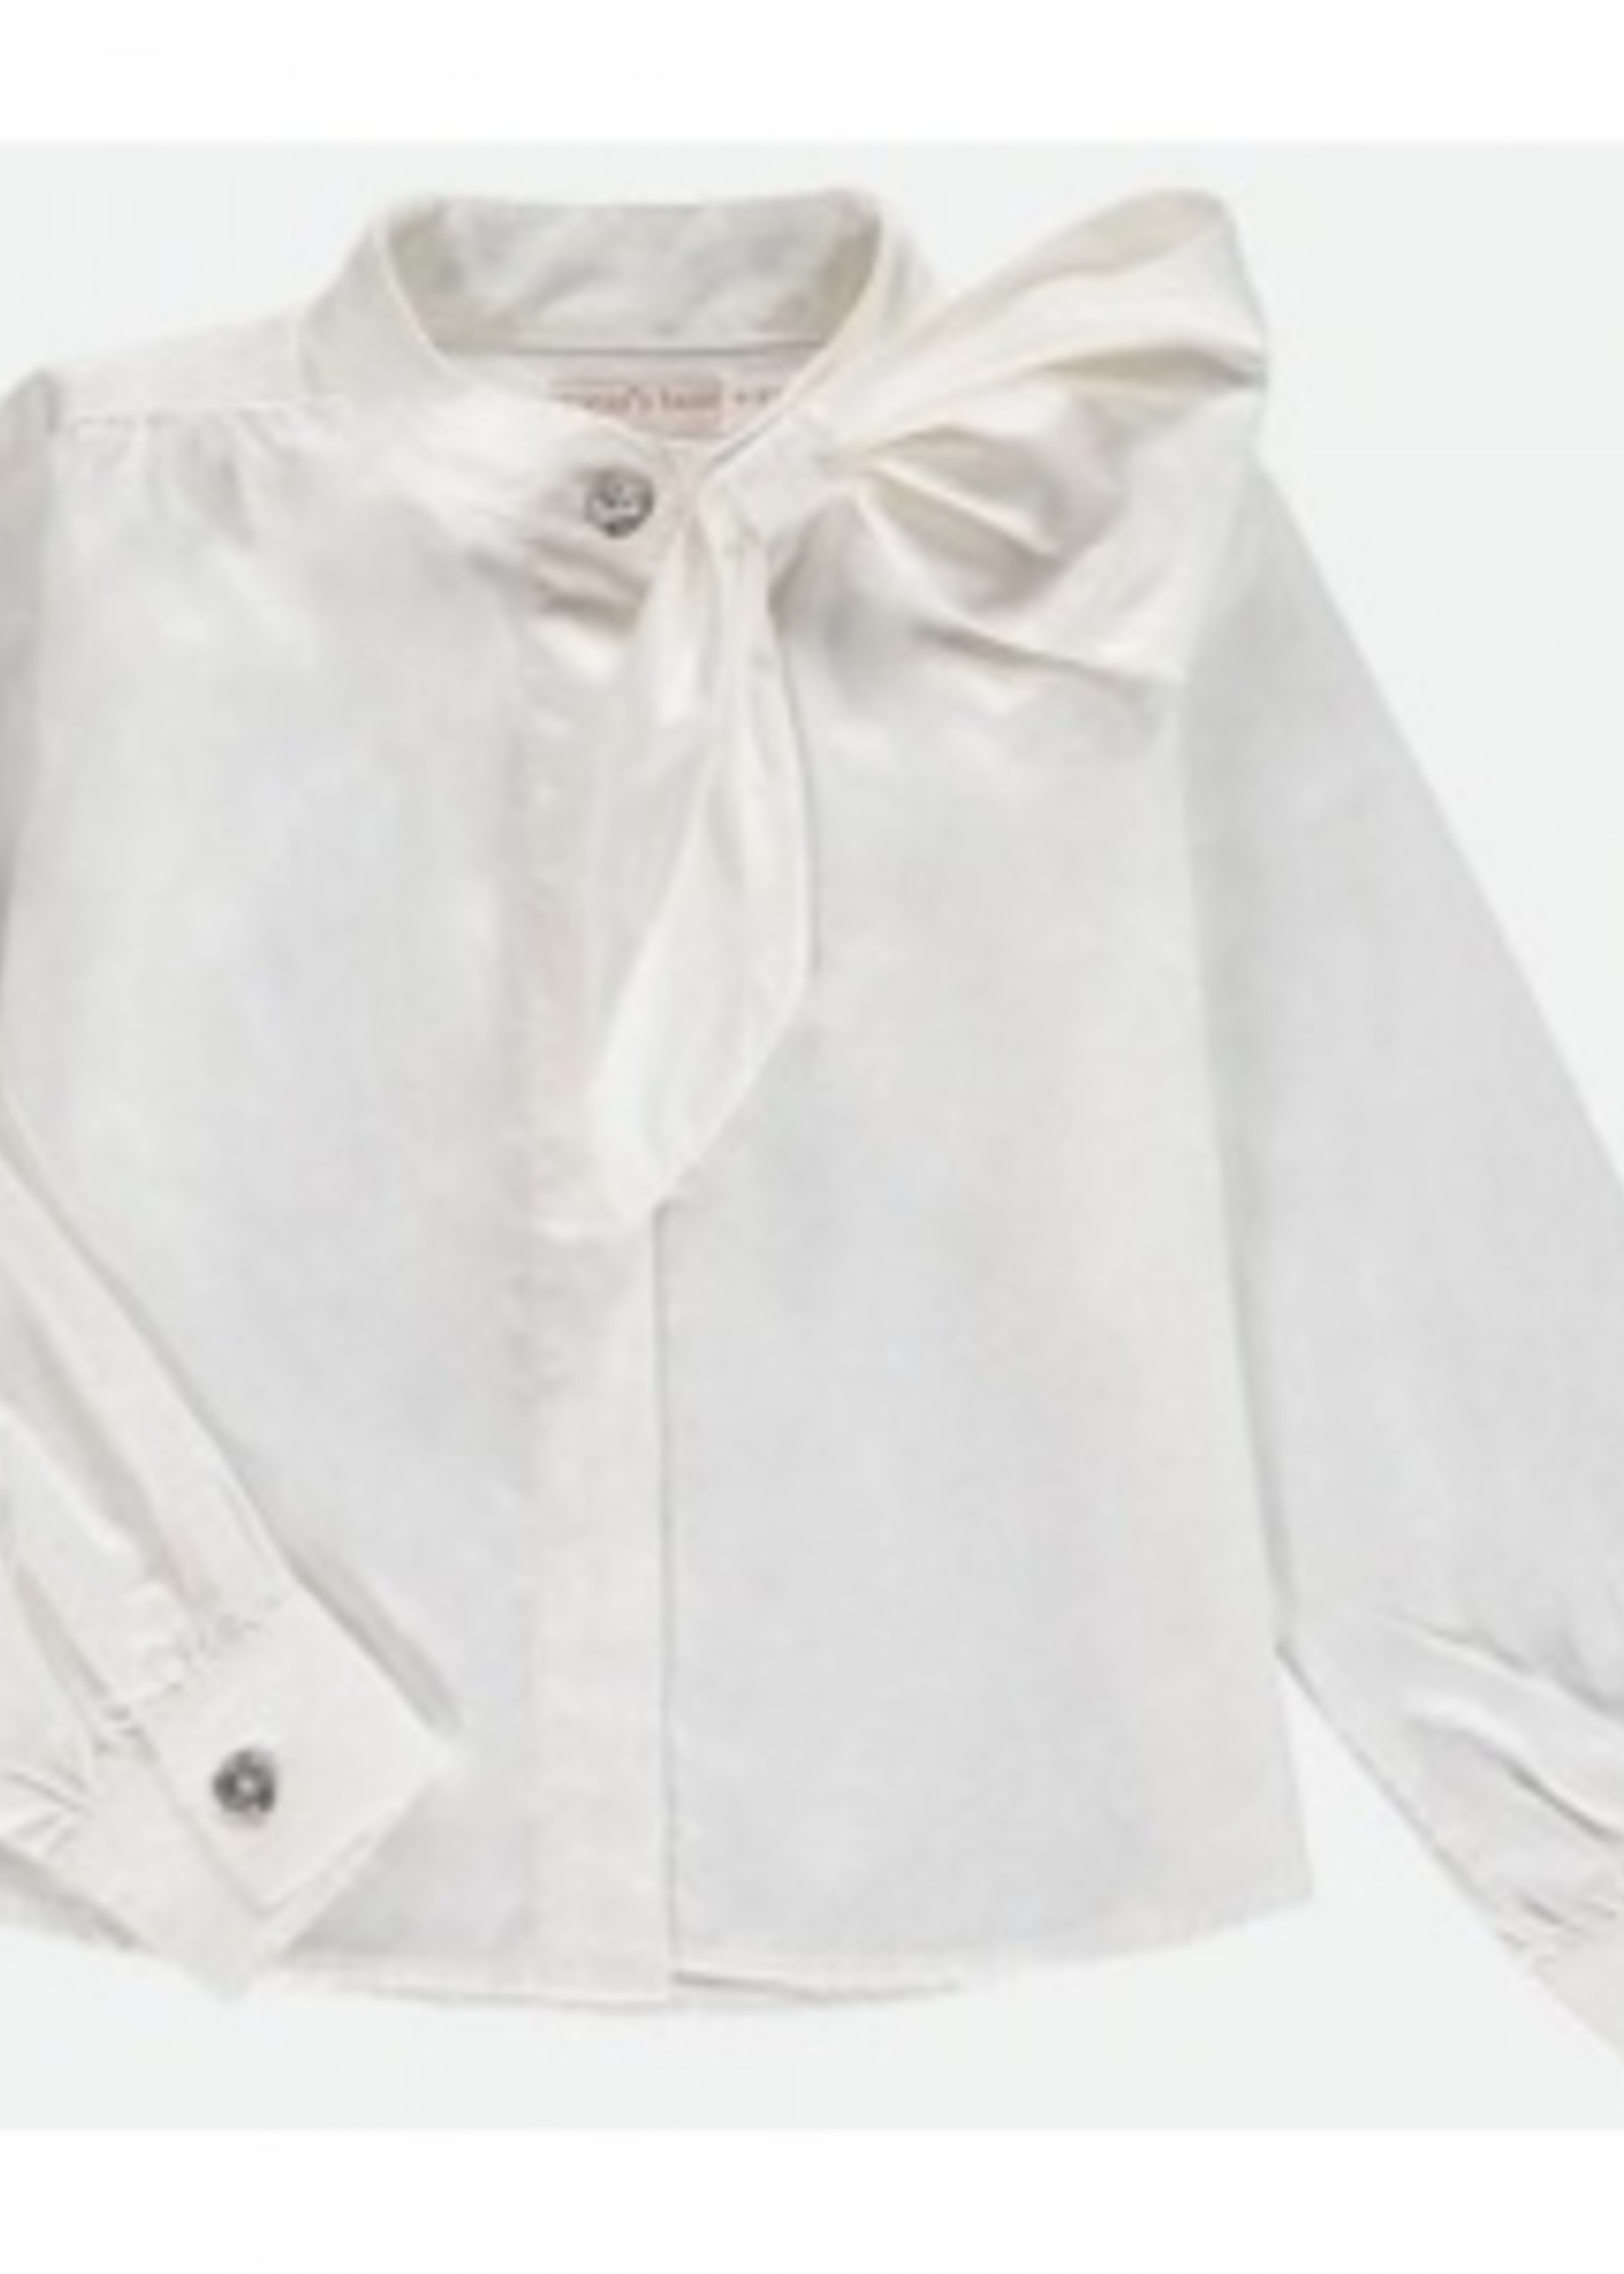 Angels Face Angels Face Perry blouse